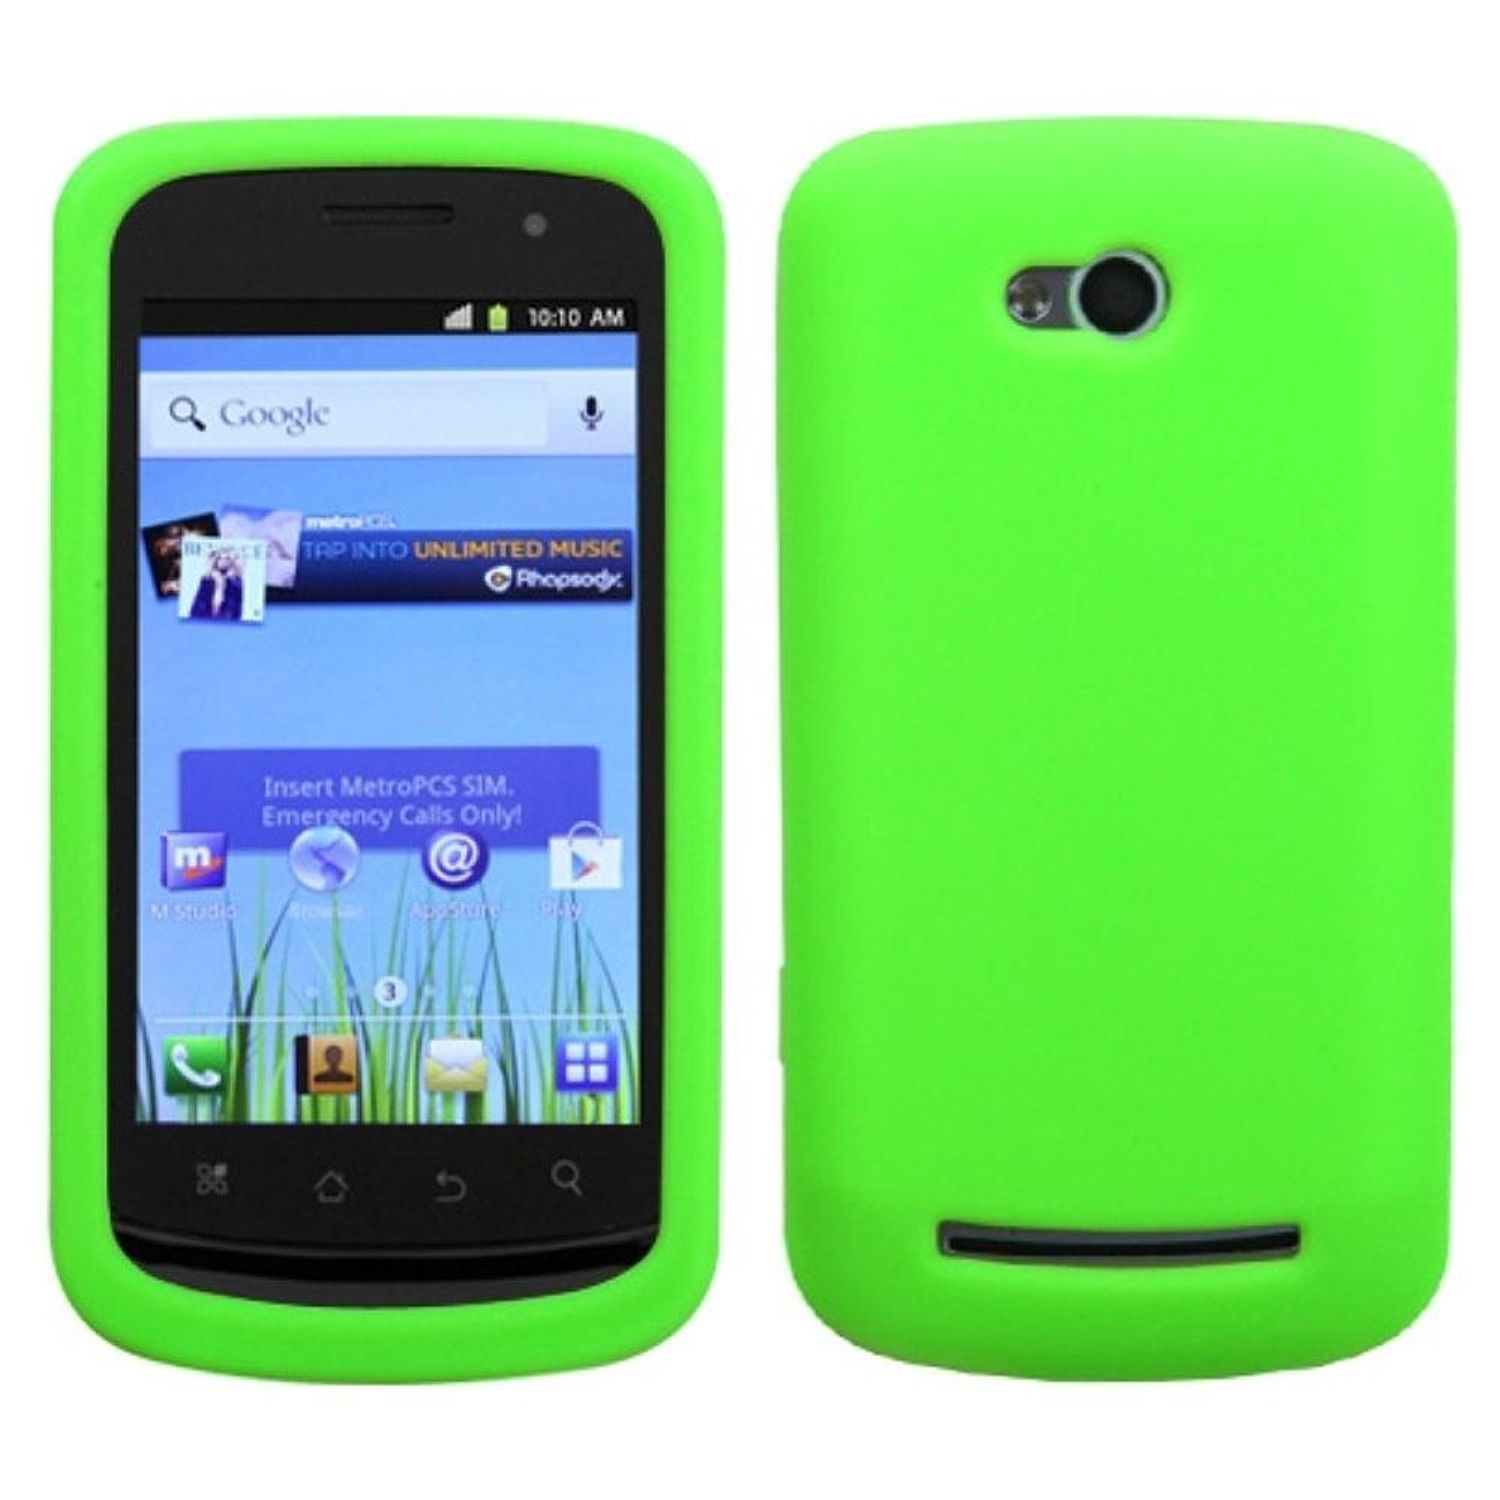 INSTEN Solid Skin Case (Electric Green) for COOLPAD: 5860E (Quattro 4G)